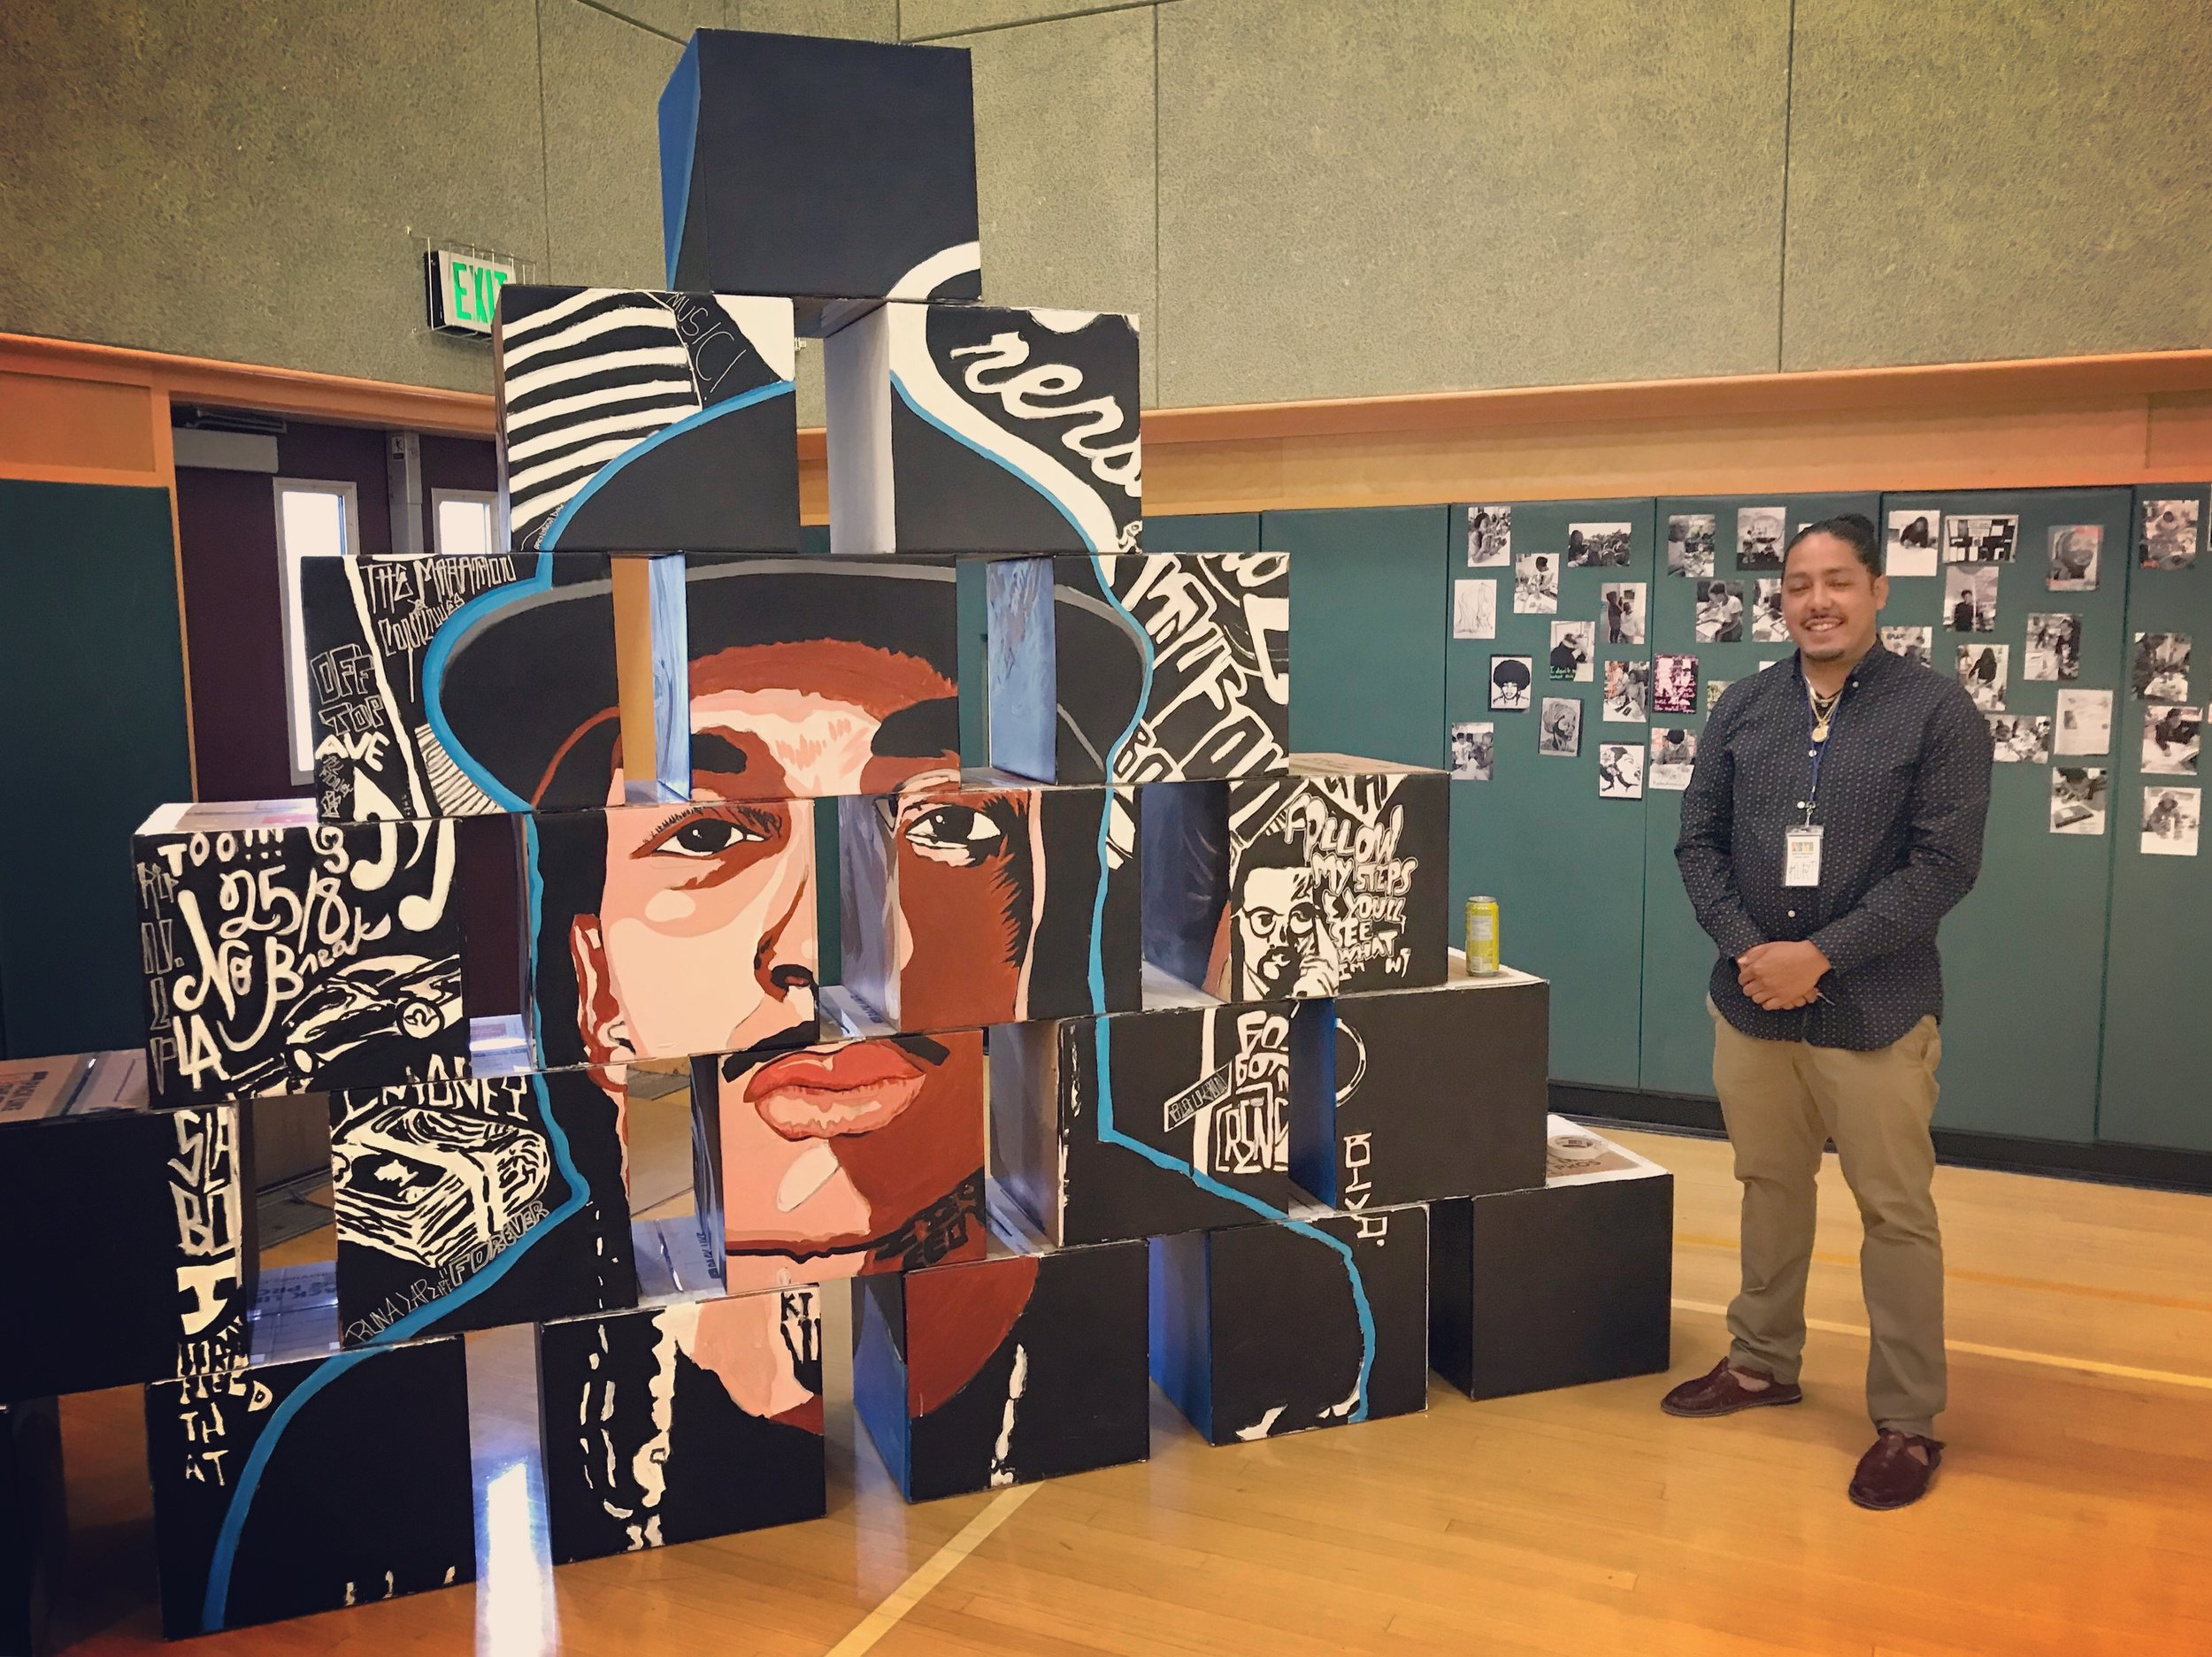 Kurt standing by his students' collaborative mural of Nipsey Hussle.